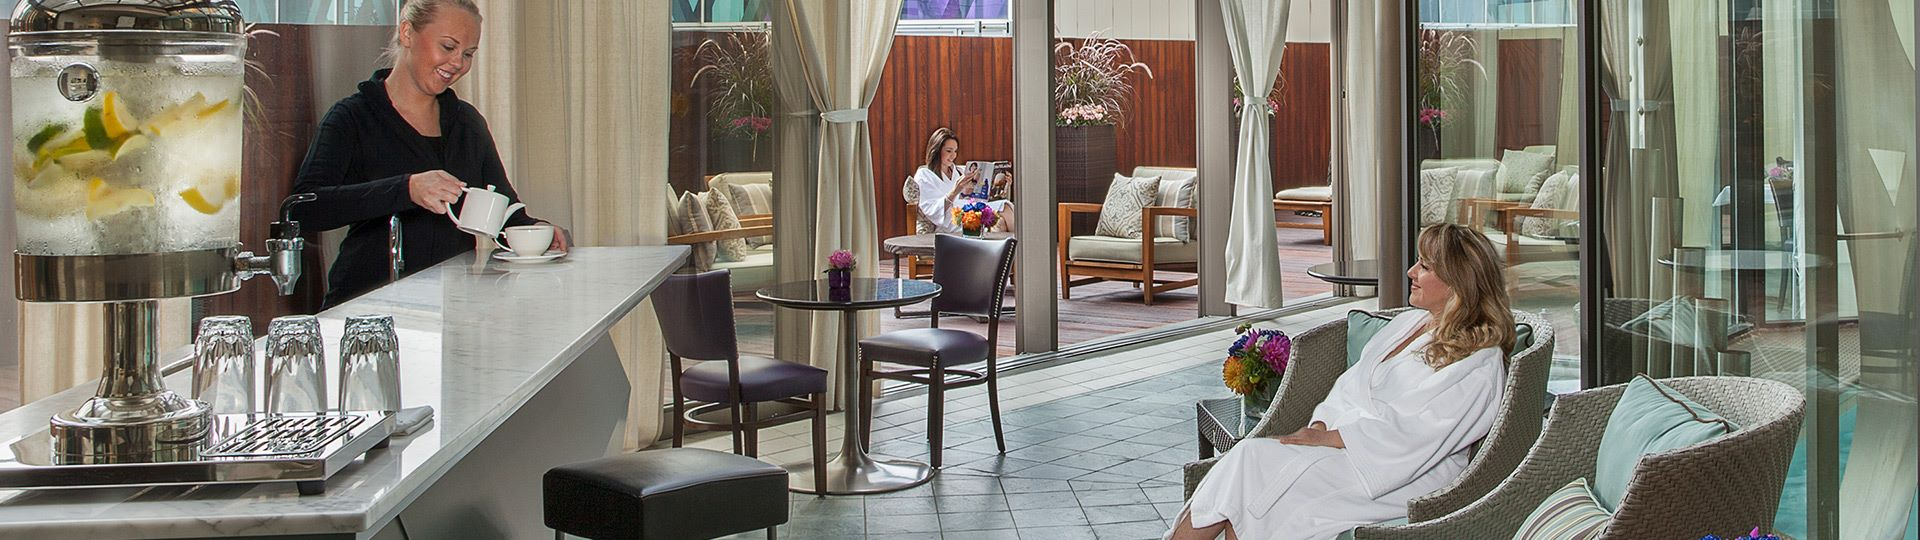 Spa Services and Packages at Intercontinental Toronto Centre, Ontario